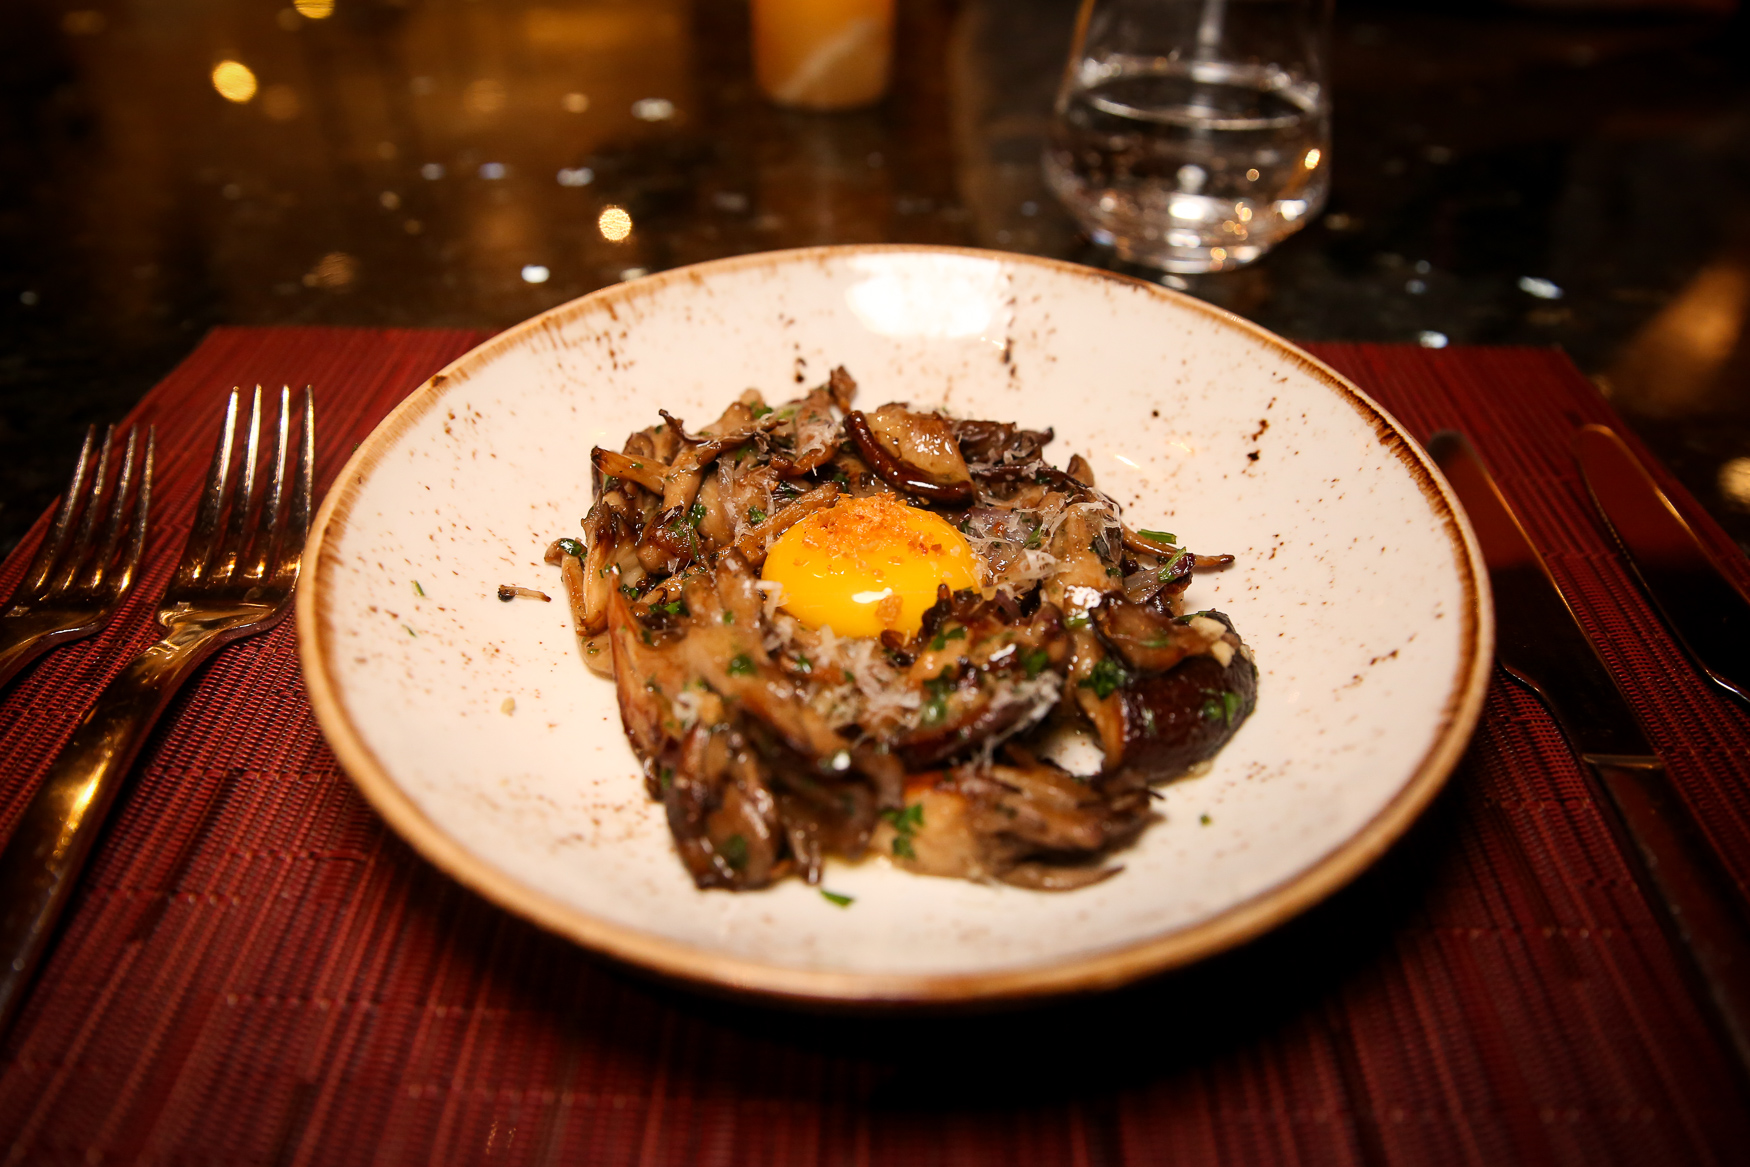 The favorite dish of the night was the mushroom cacio e pepe nesting an organic egg yolk, which was inspired by my love of vegetable dishes and pasta carbonara. (Image: Amanda Andrade-Rhoades/ DC Refined)